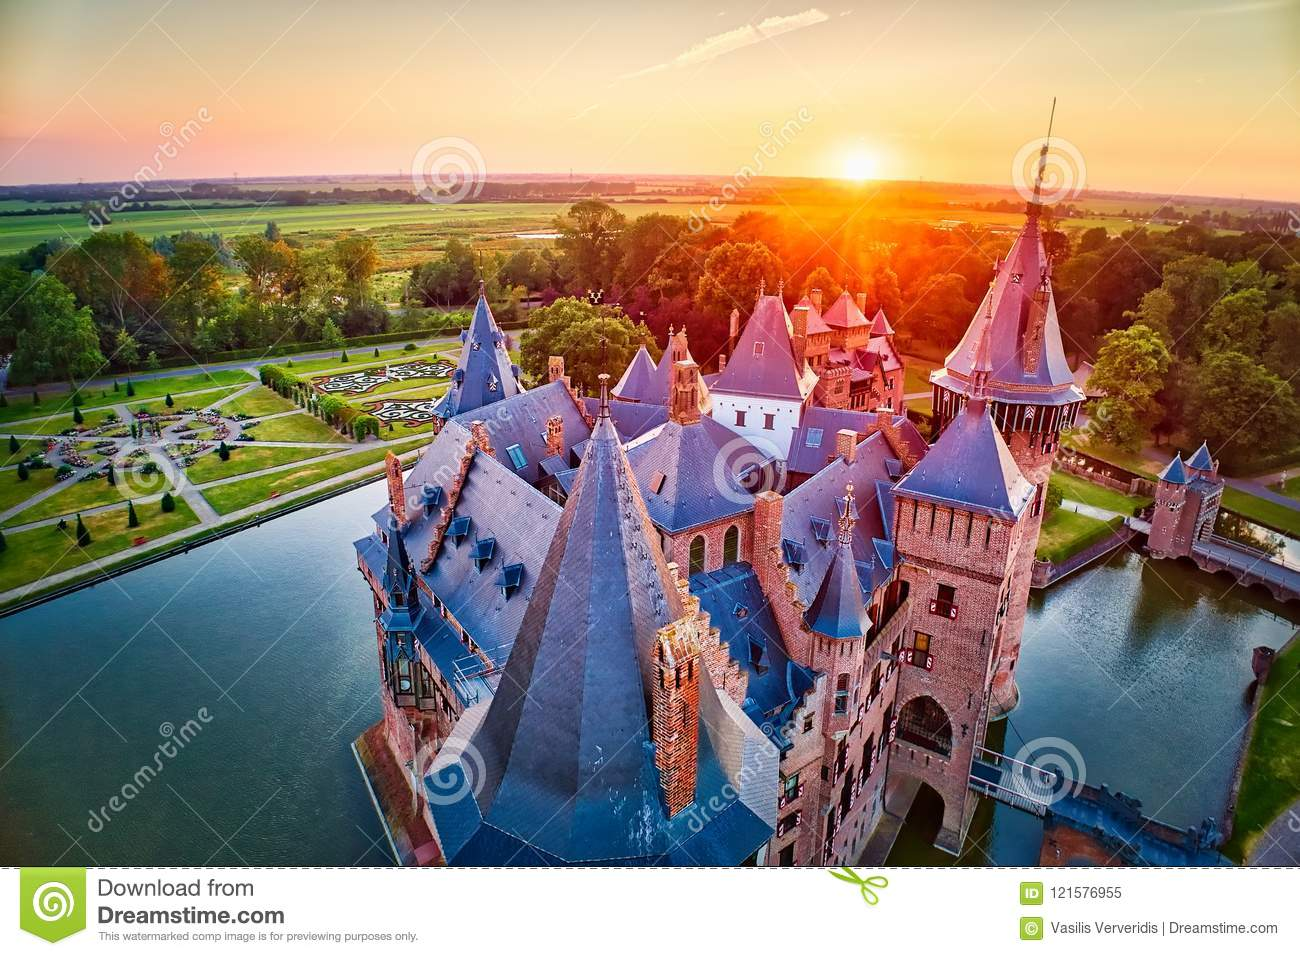 Aerial view of the medieval castle De Haar at sunset in Netherlands, Europe